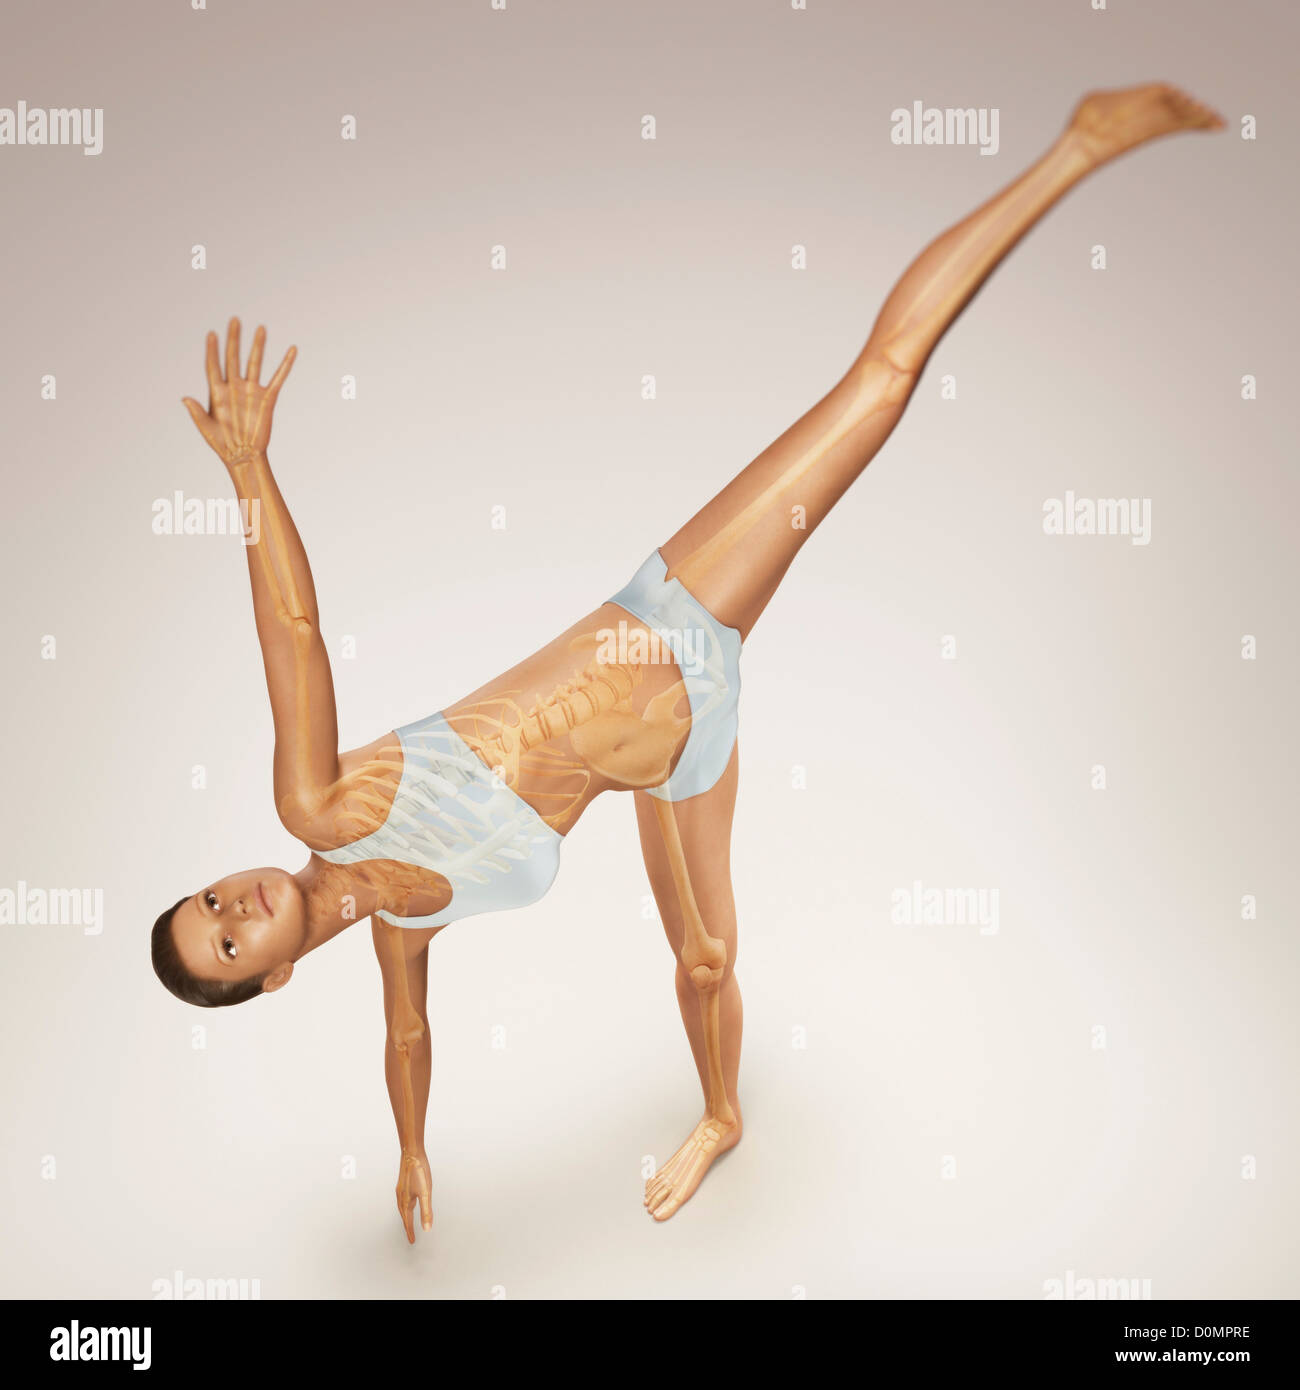 Skeleton layered over a female body in half moon pose showing the skeletal alignment of this particular yoga posture. - Stock Image